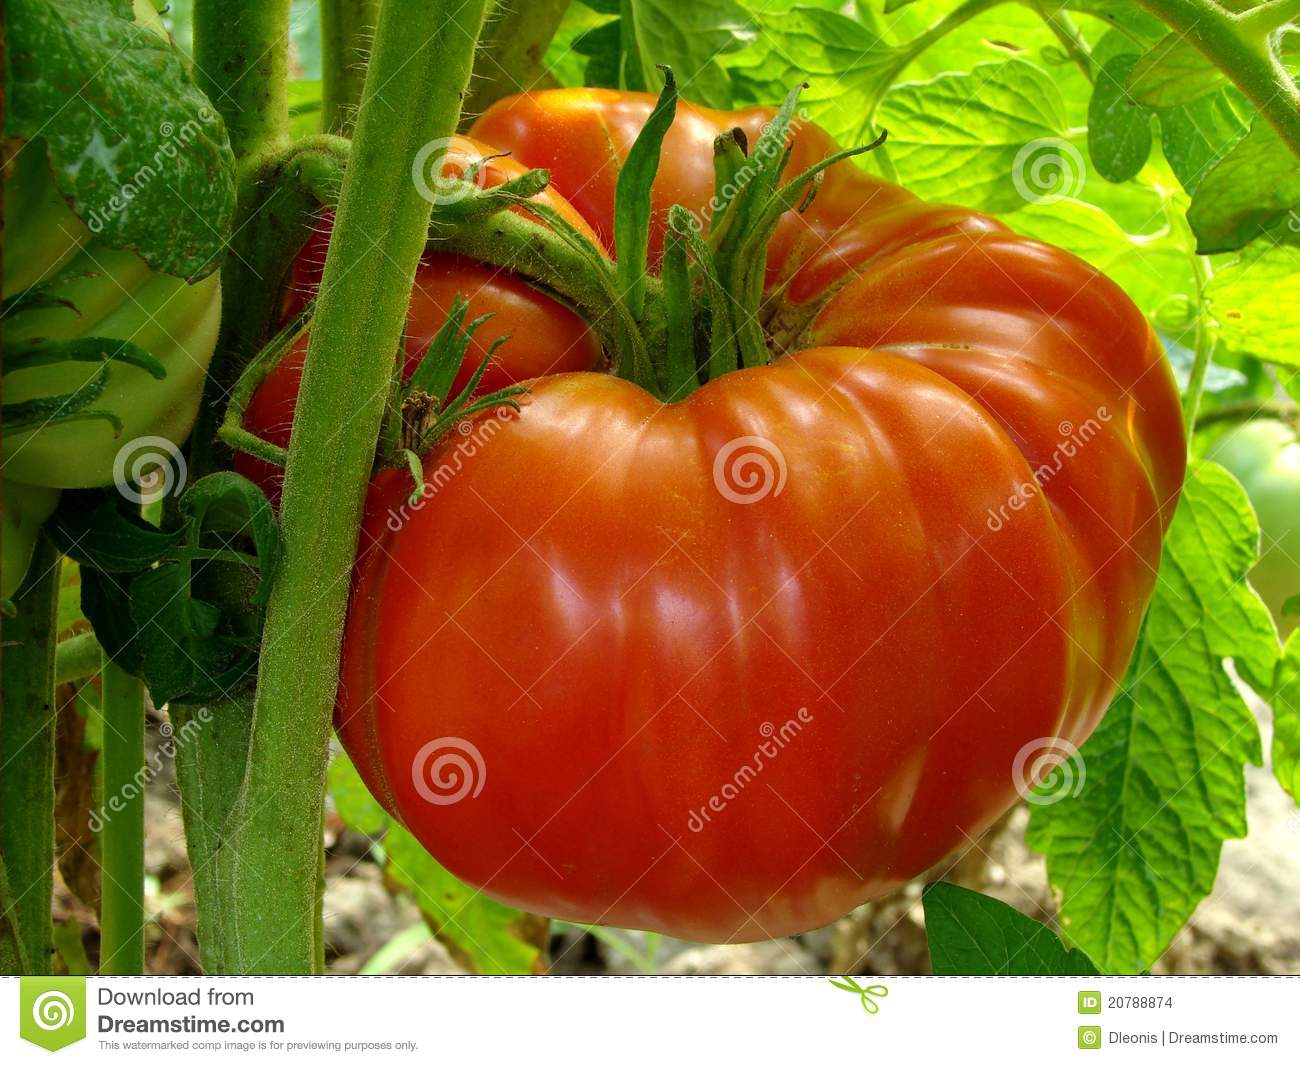 Red Giant Tomato Stock Images - Image: 20788874